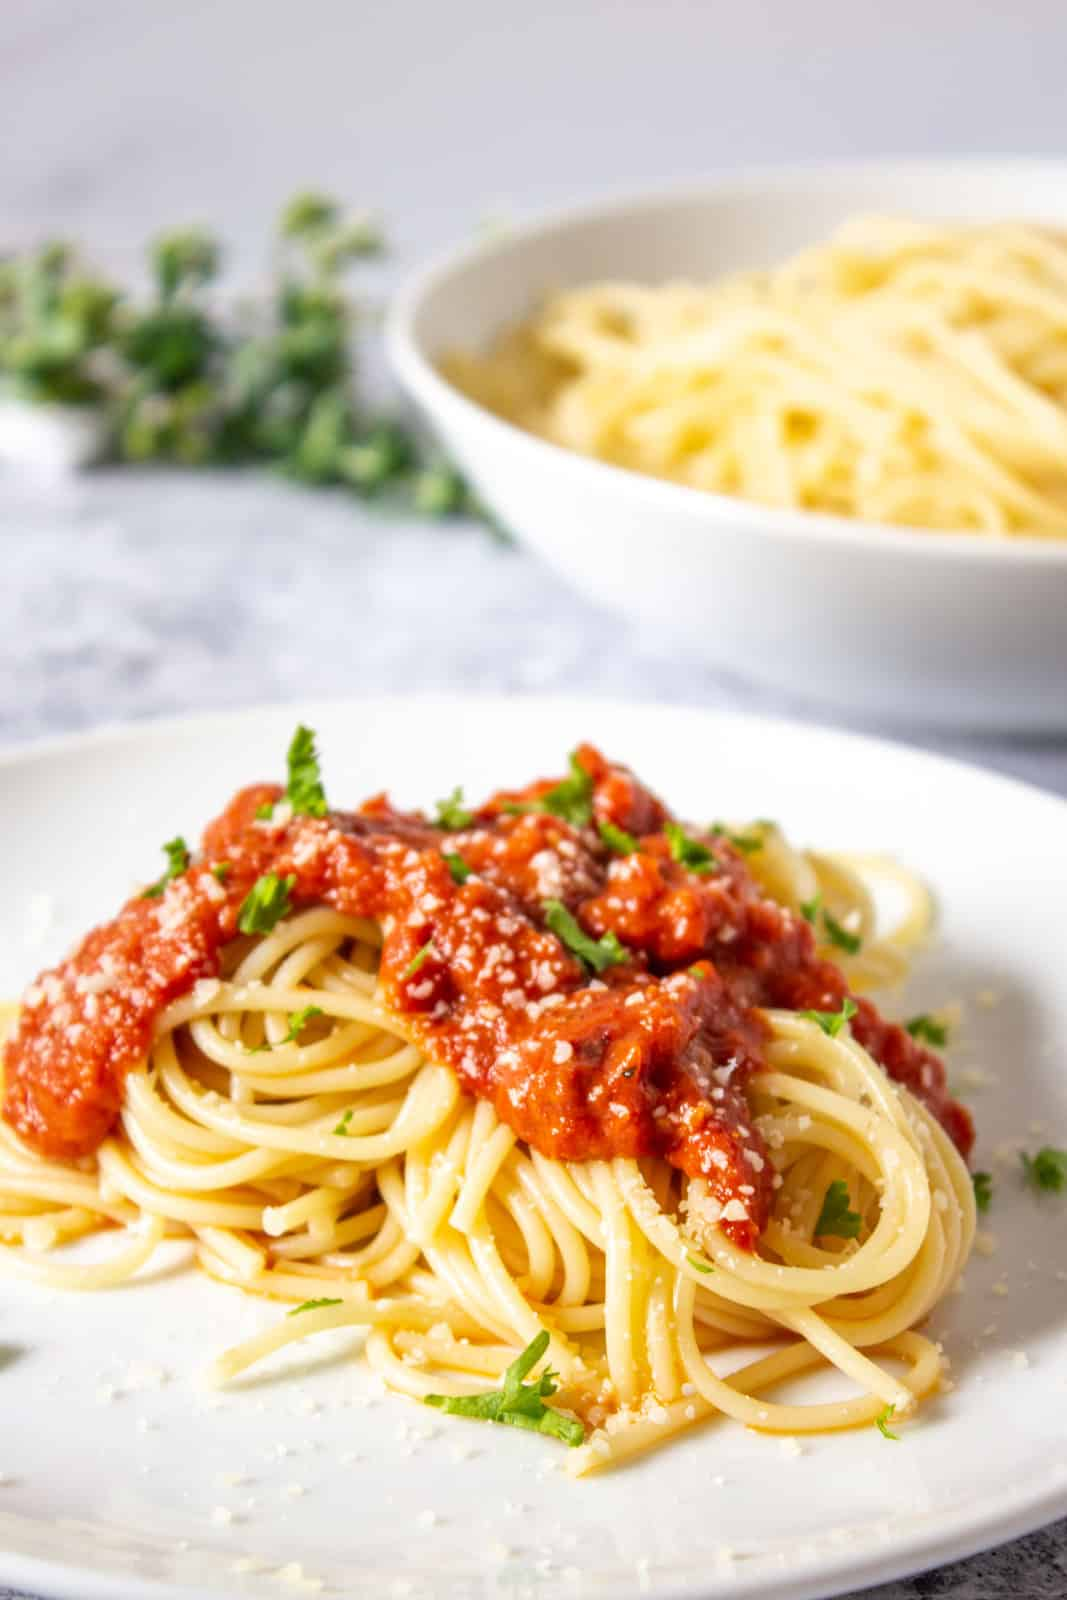 Pasta with oven roasted tomato sauce.